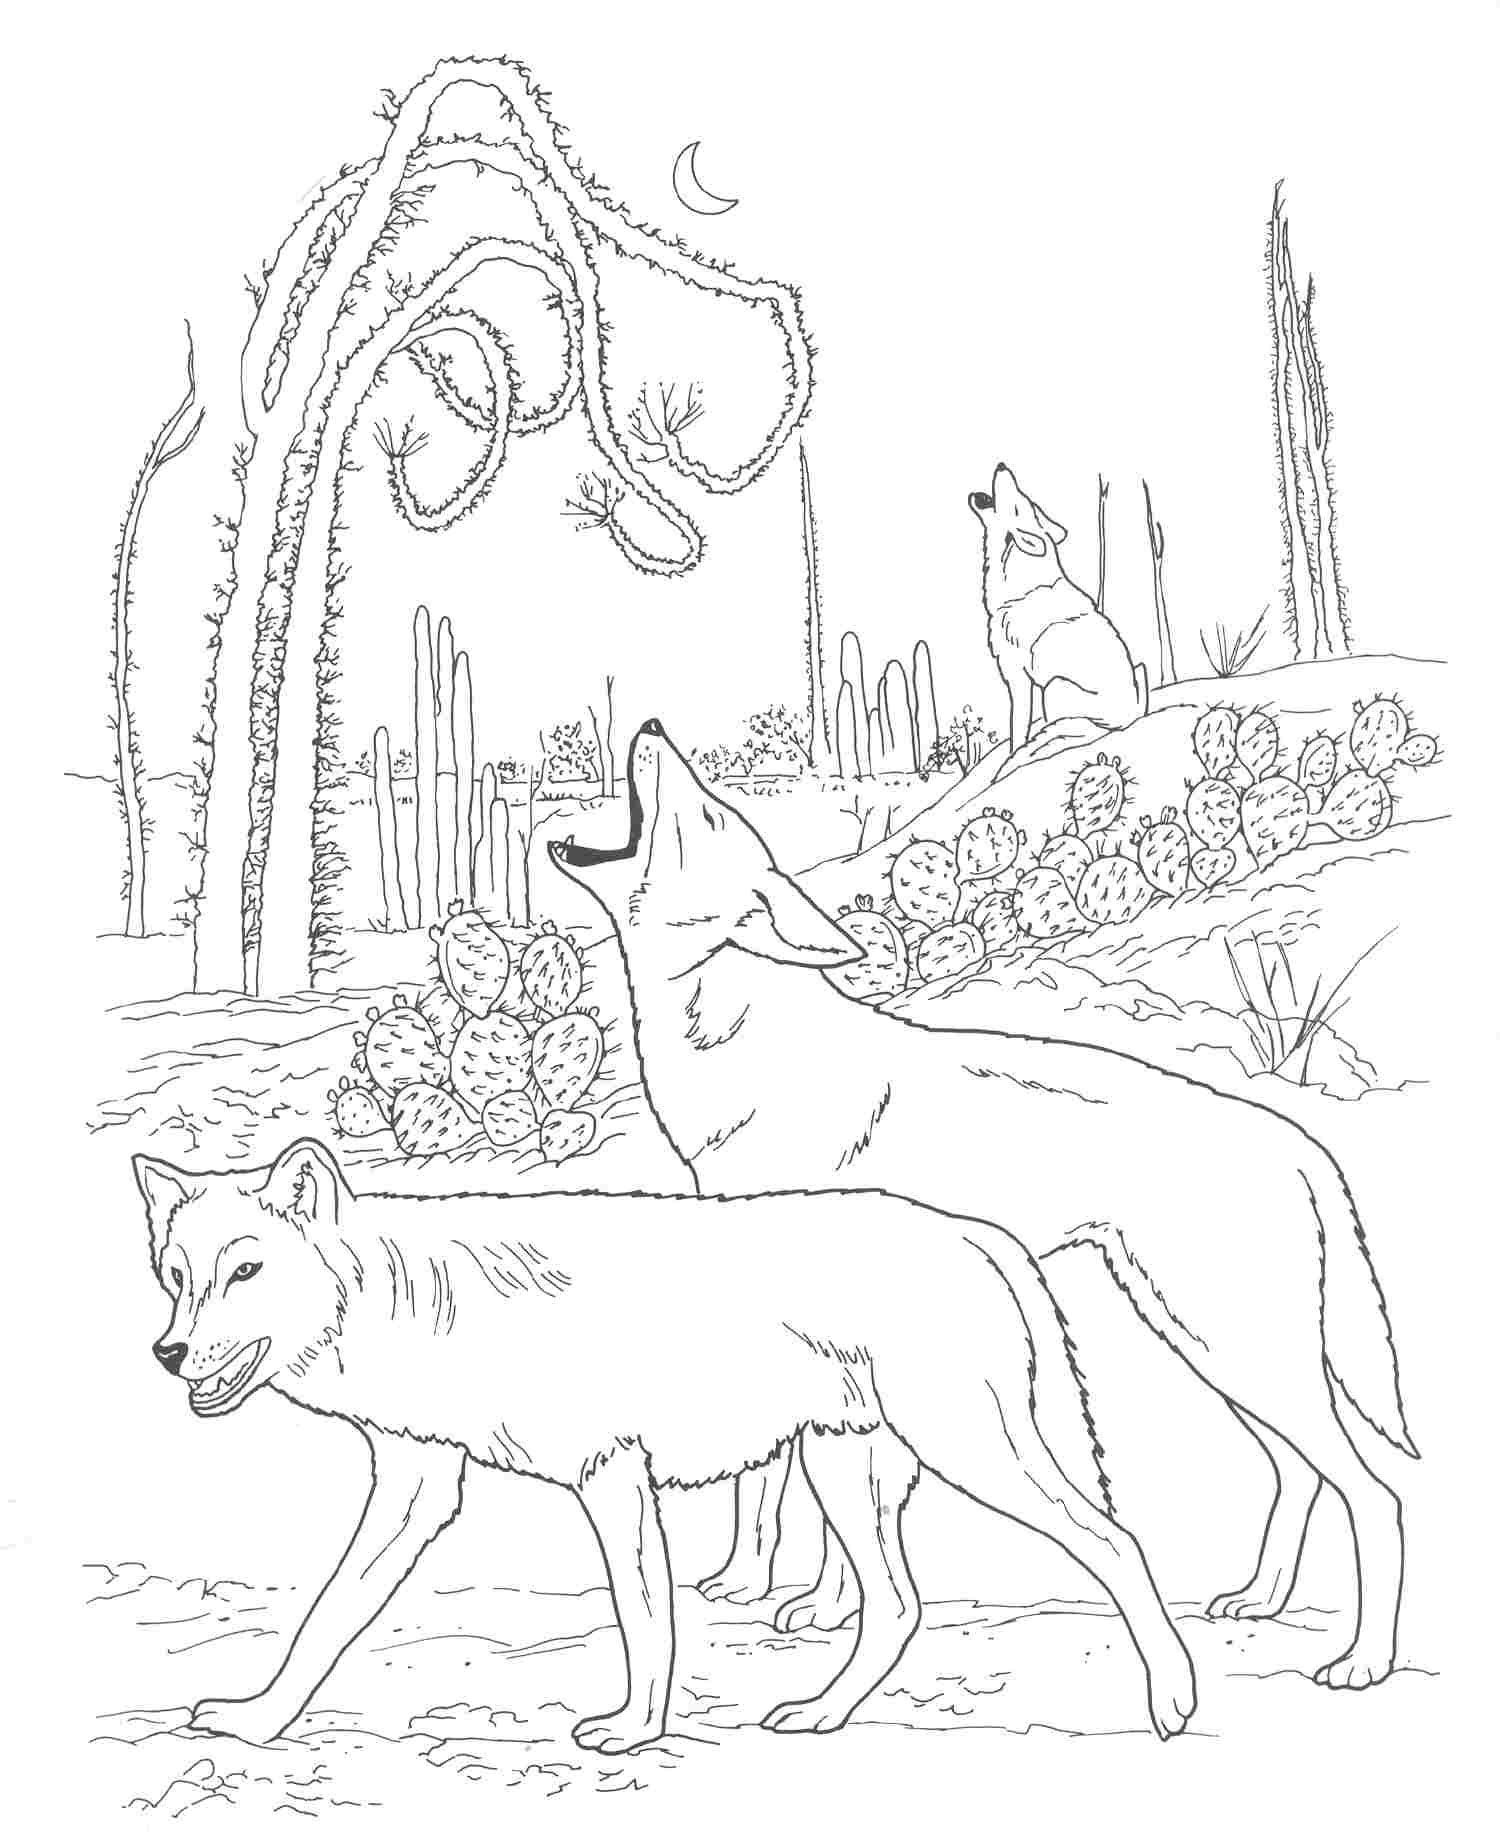 Desert Coyote Coloring Pages Printable Sheets For Kids Get The Latest Free Images Favorite To